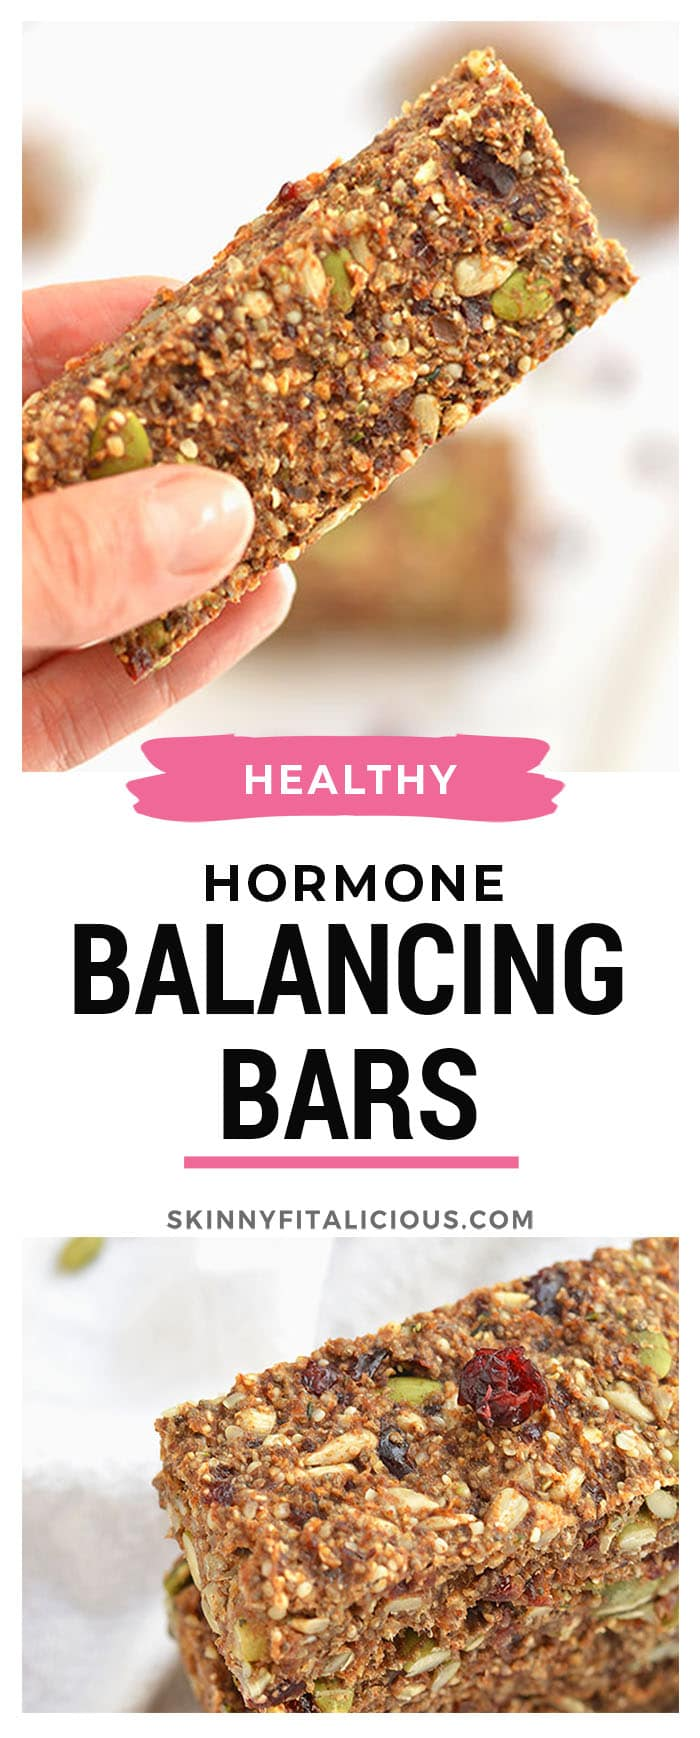 Vegan Hormone Balancing Bars are the perfect snack for getting omega-3's for hormone function. Proper hormone function is key to weight loss & good health. Vegan + Gluten Free + Low Calorie!